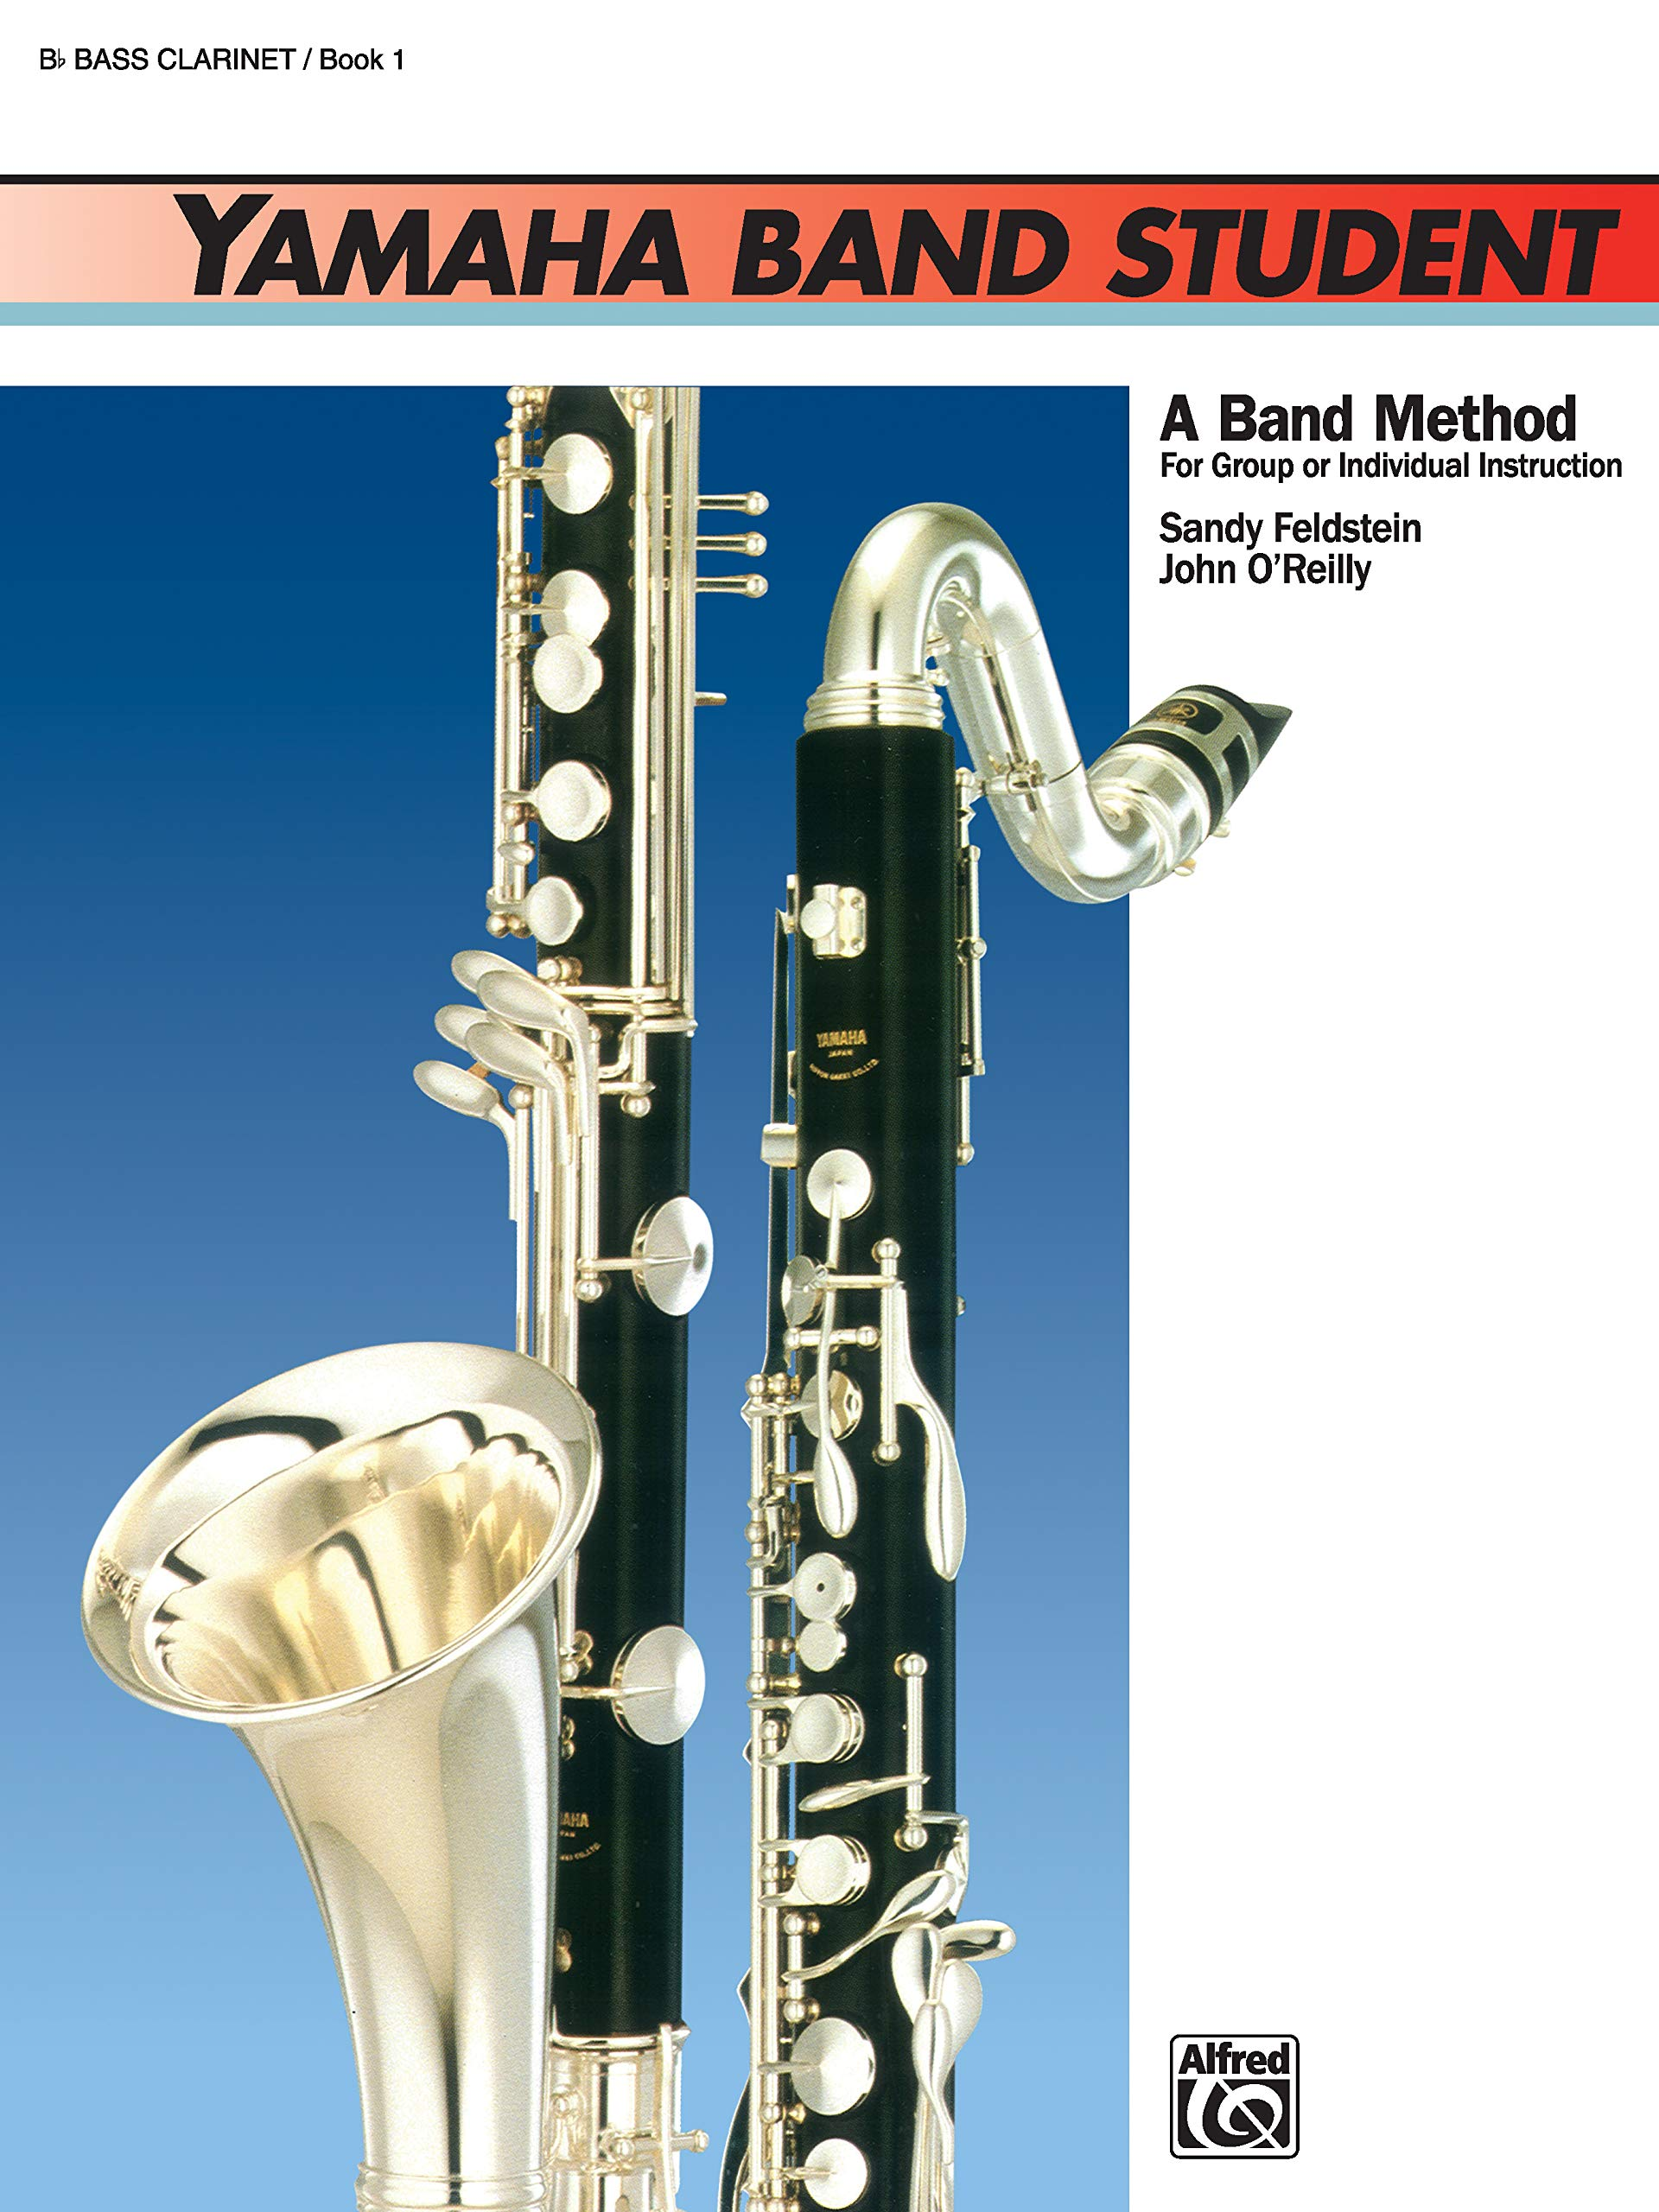 Yamaha Band Student 1 Bass Saxophone Learn Play Bass Saxophone SHEET MUSIC BOOK